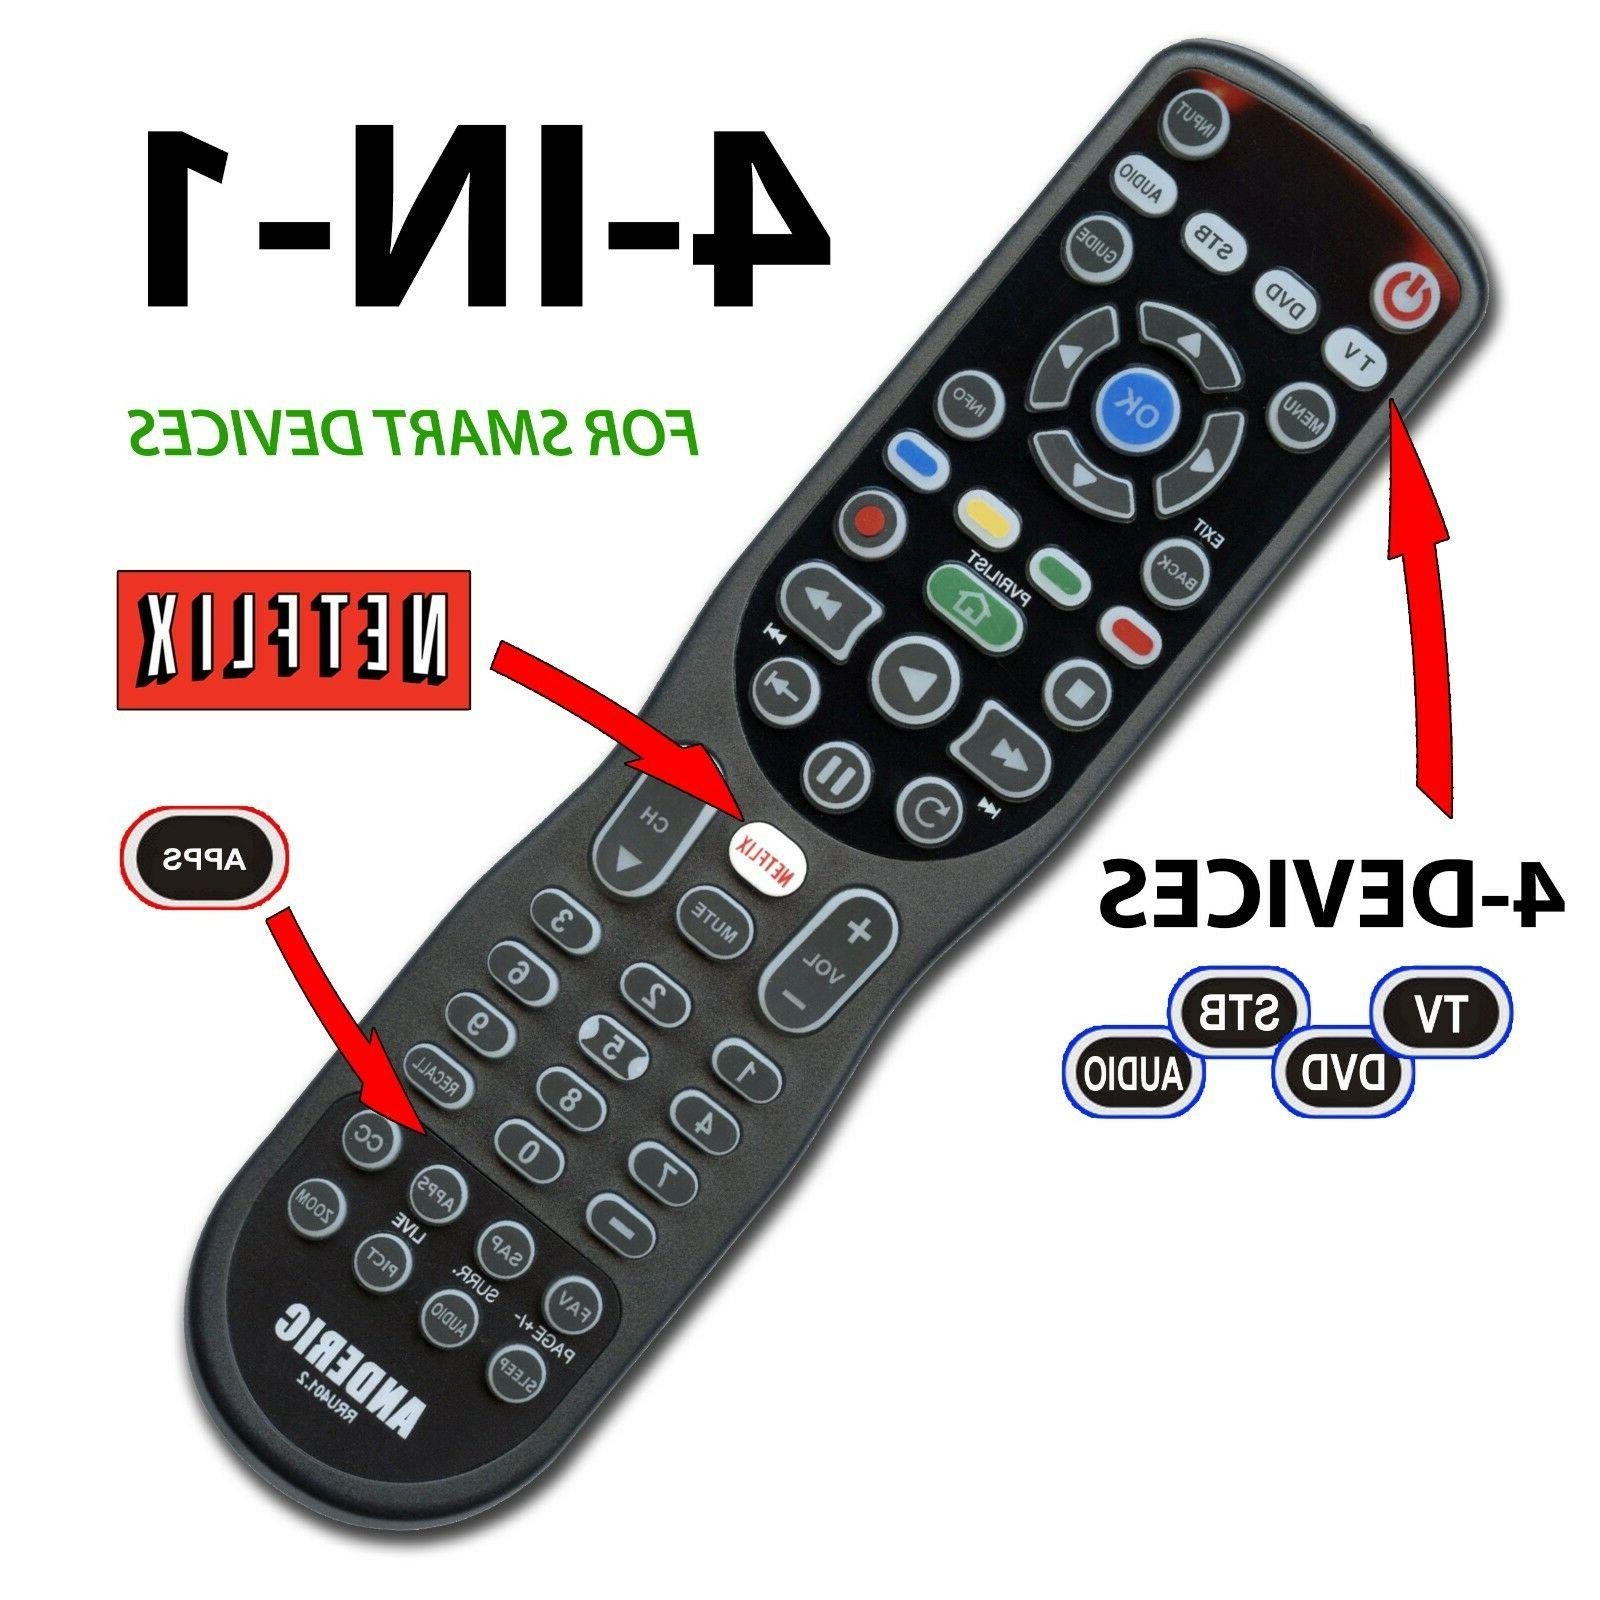 4 device universal remote control for smart